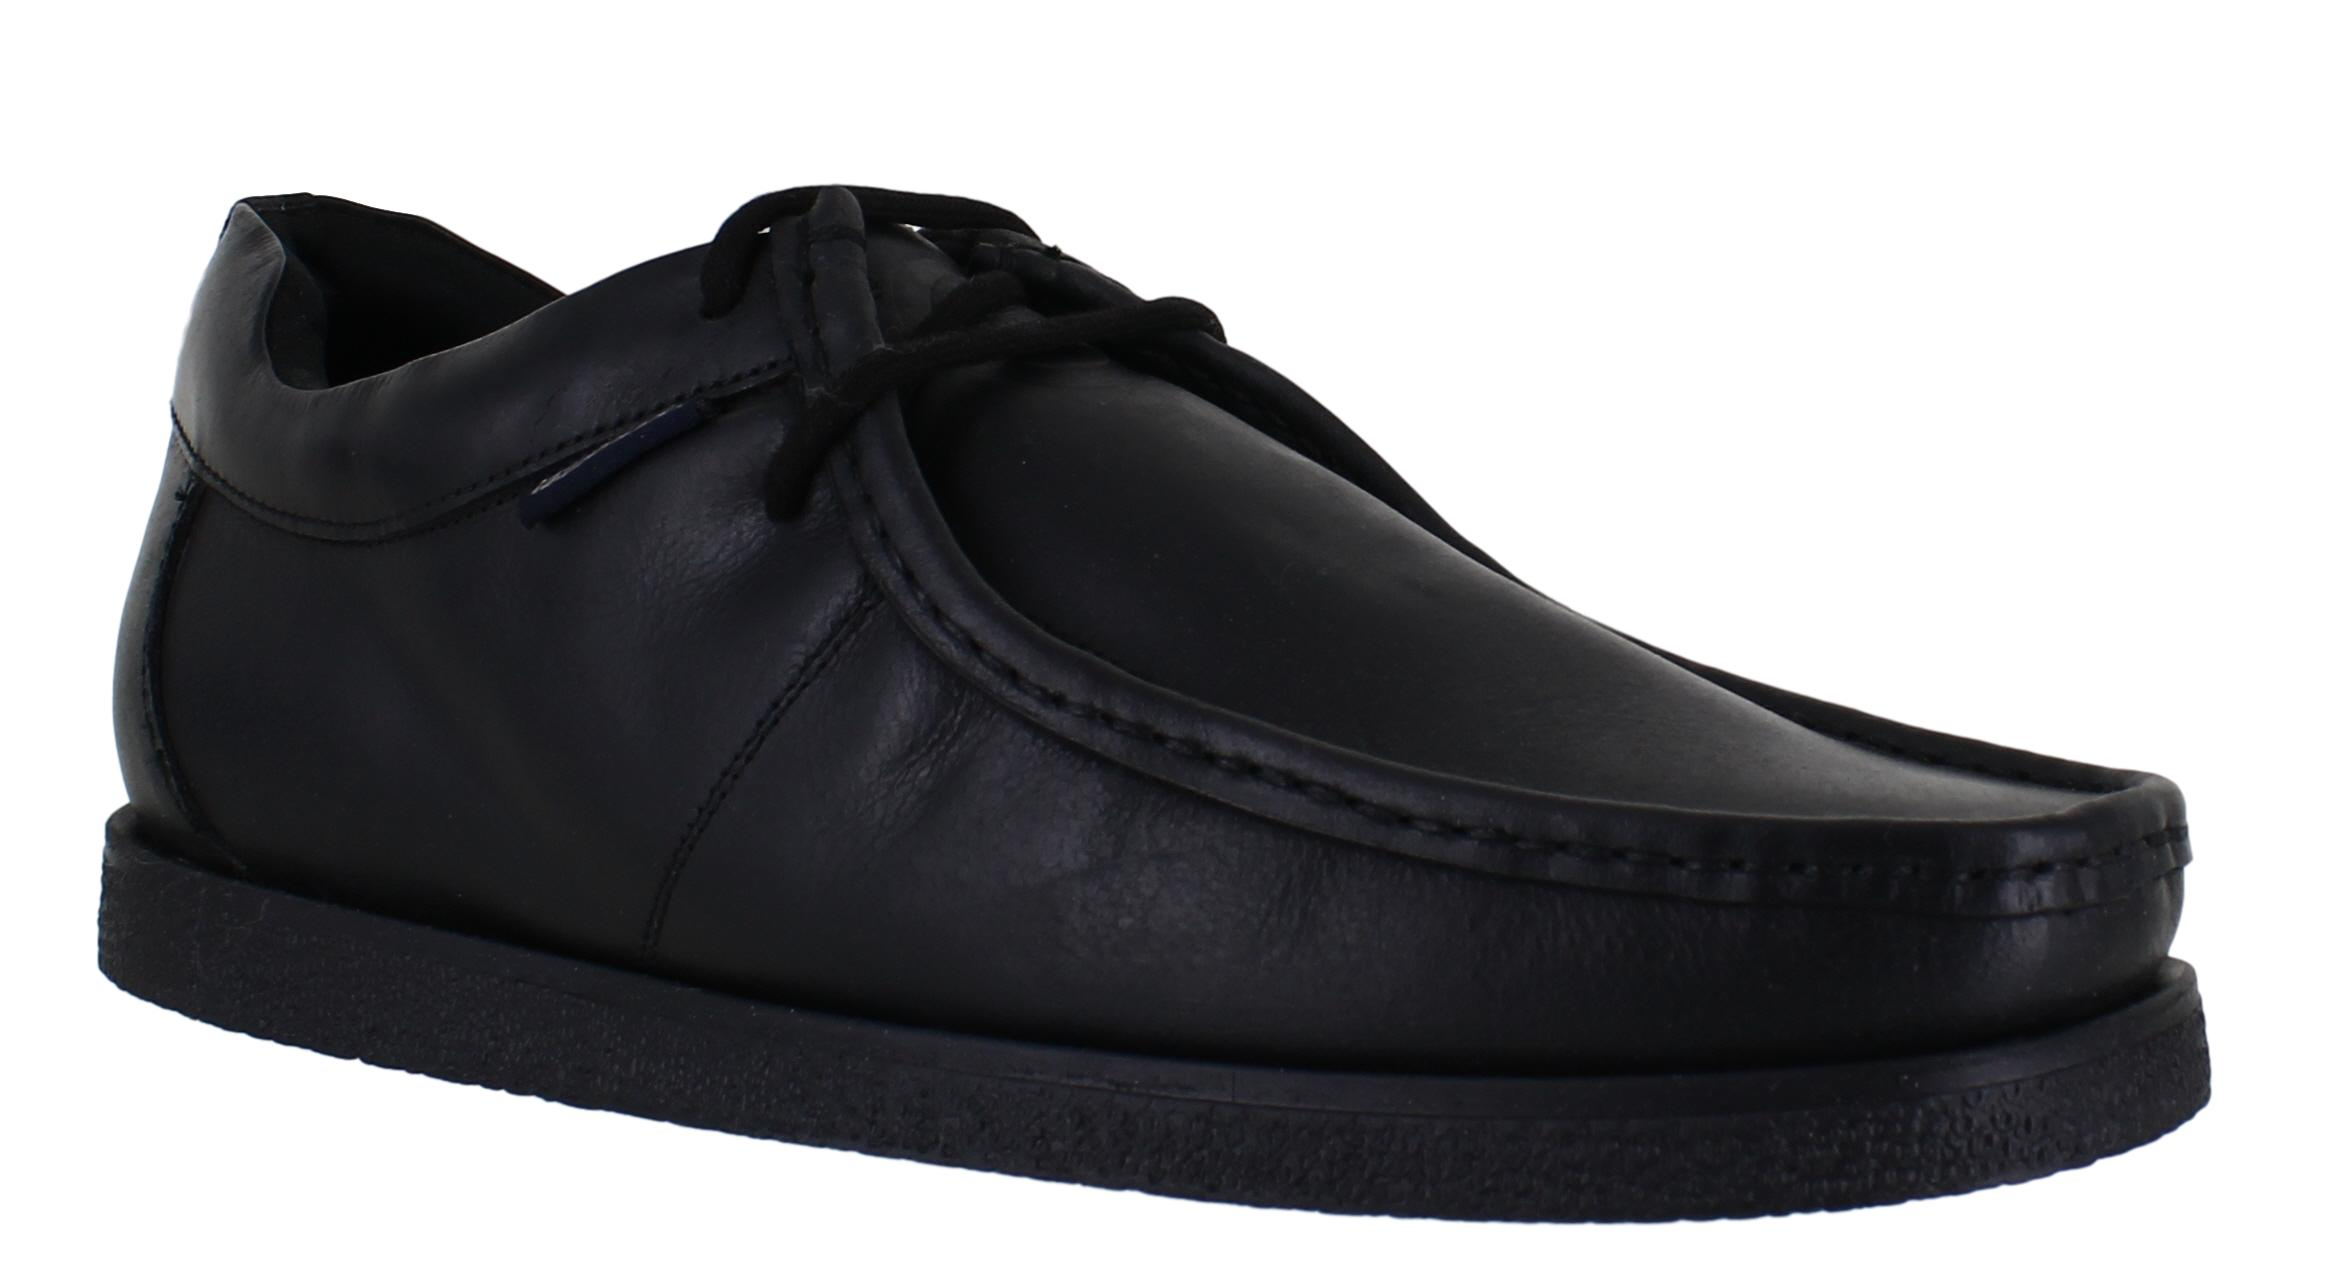 Mens Lambretta Classic Wallabee Leather Lace Up Casual Smart Shoes Sizes 7 to 15